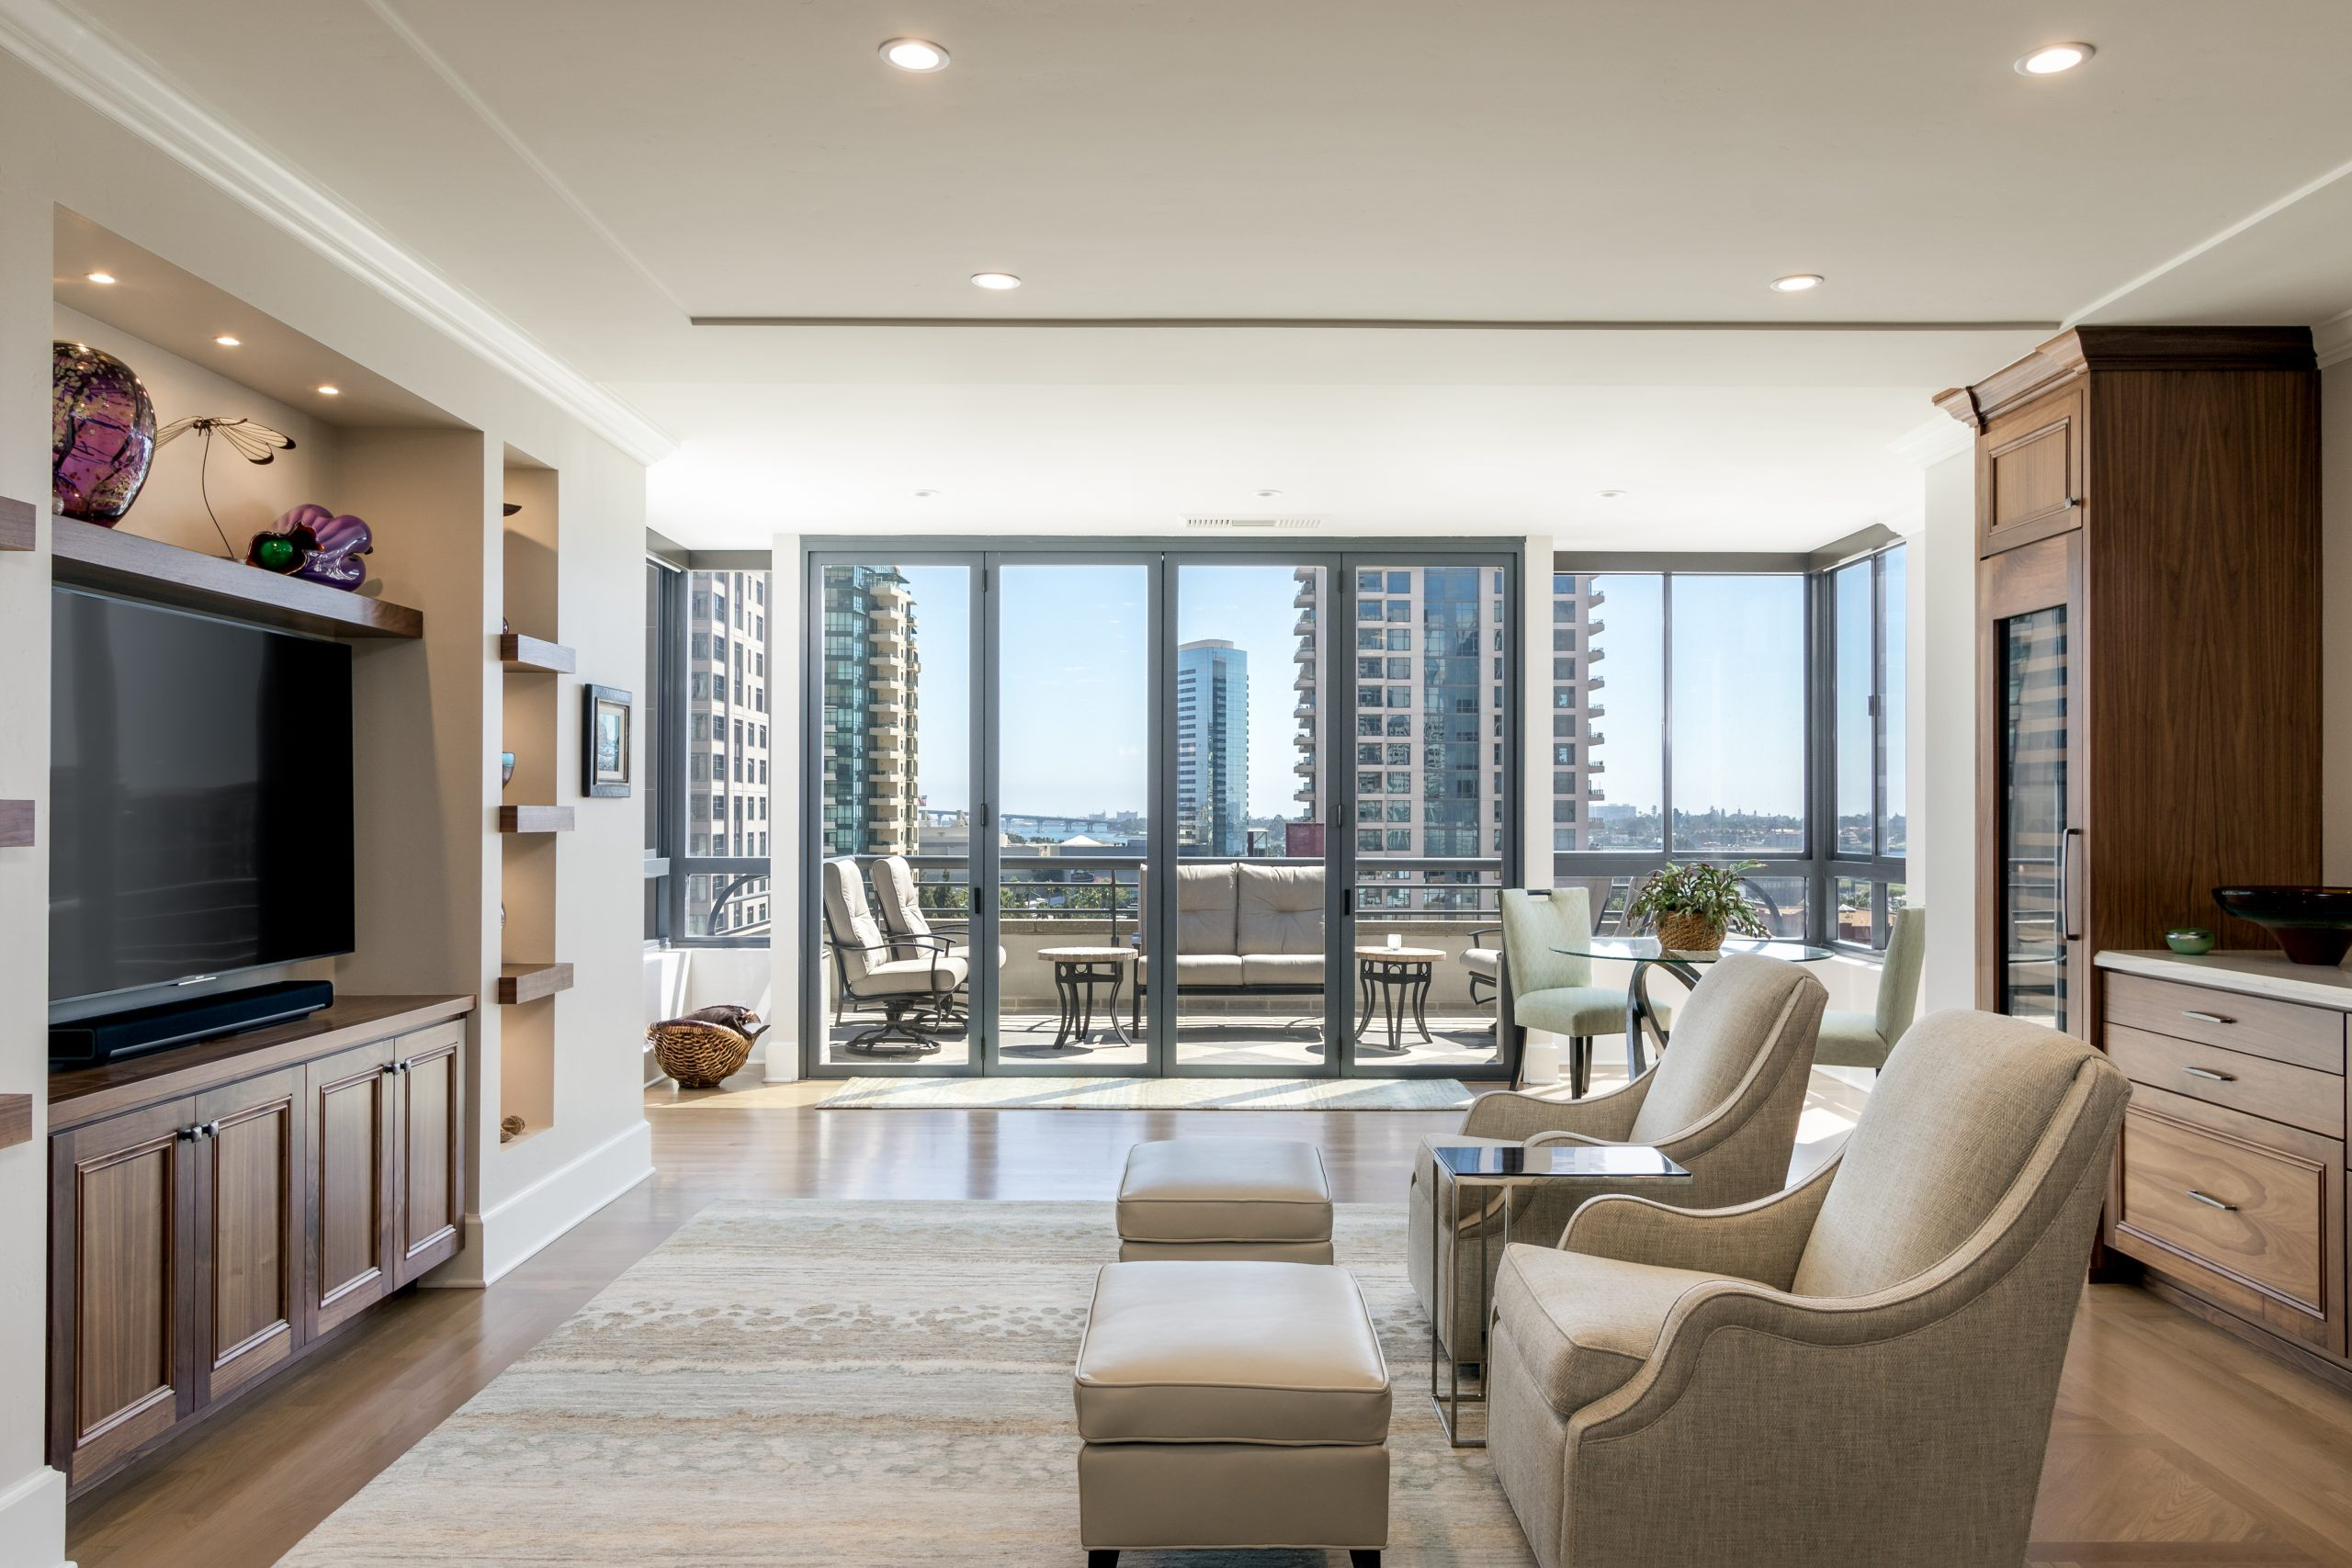 at home interior design consultants home interior renovations by remodeling consultants Lars Remodeling u0026 Design is your trusted high rise remodel company in San  Diego.